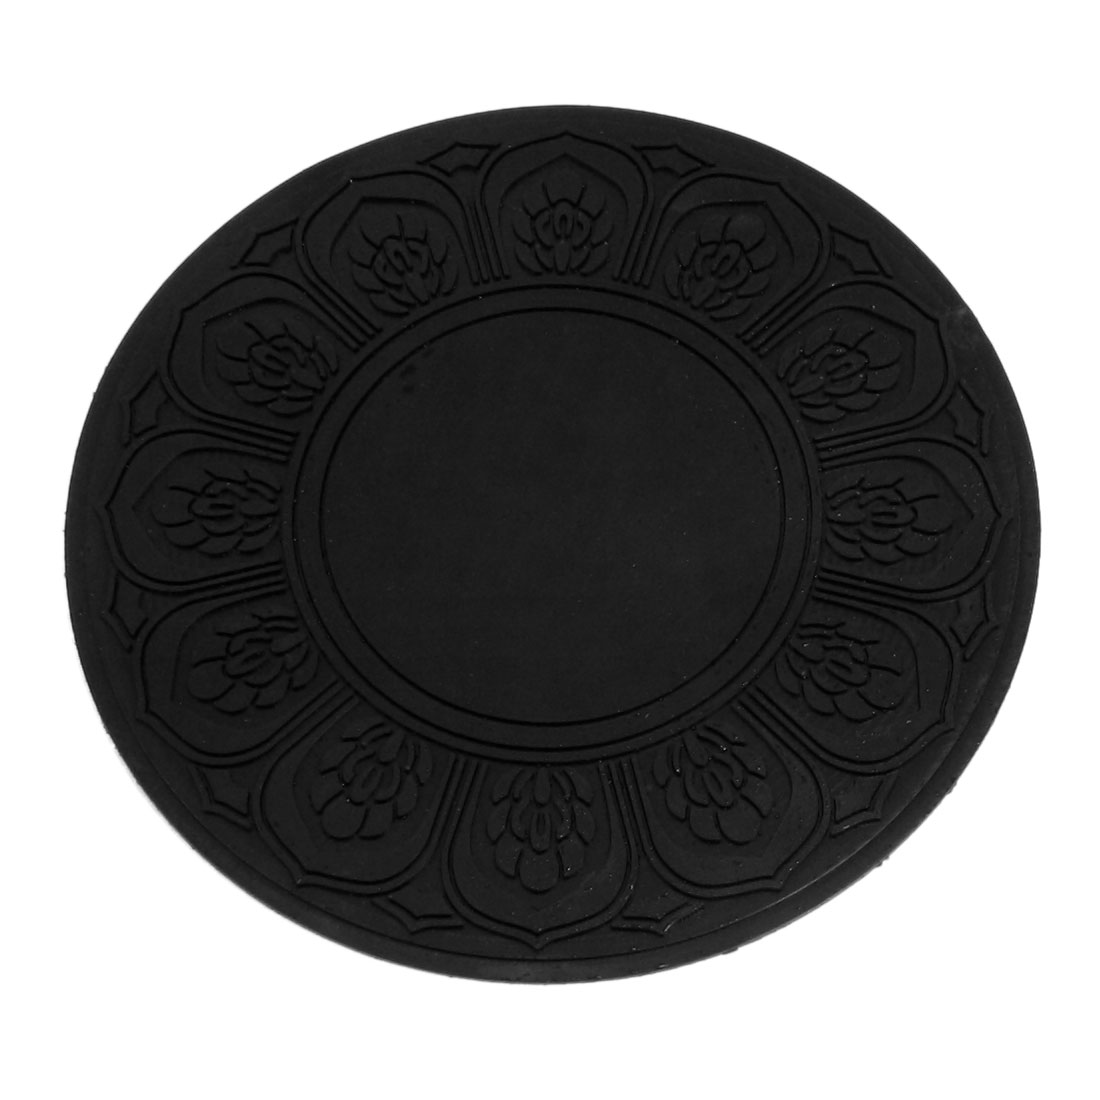 "Auto Car 5"" Round Floral Phone Holder Nonslip Rubber Pad Mat Black"